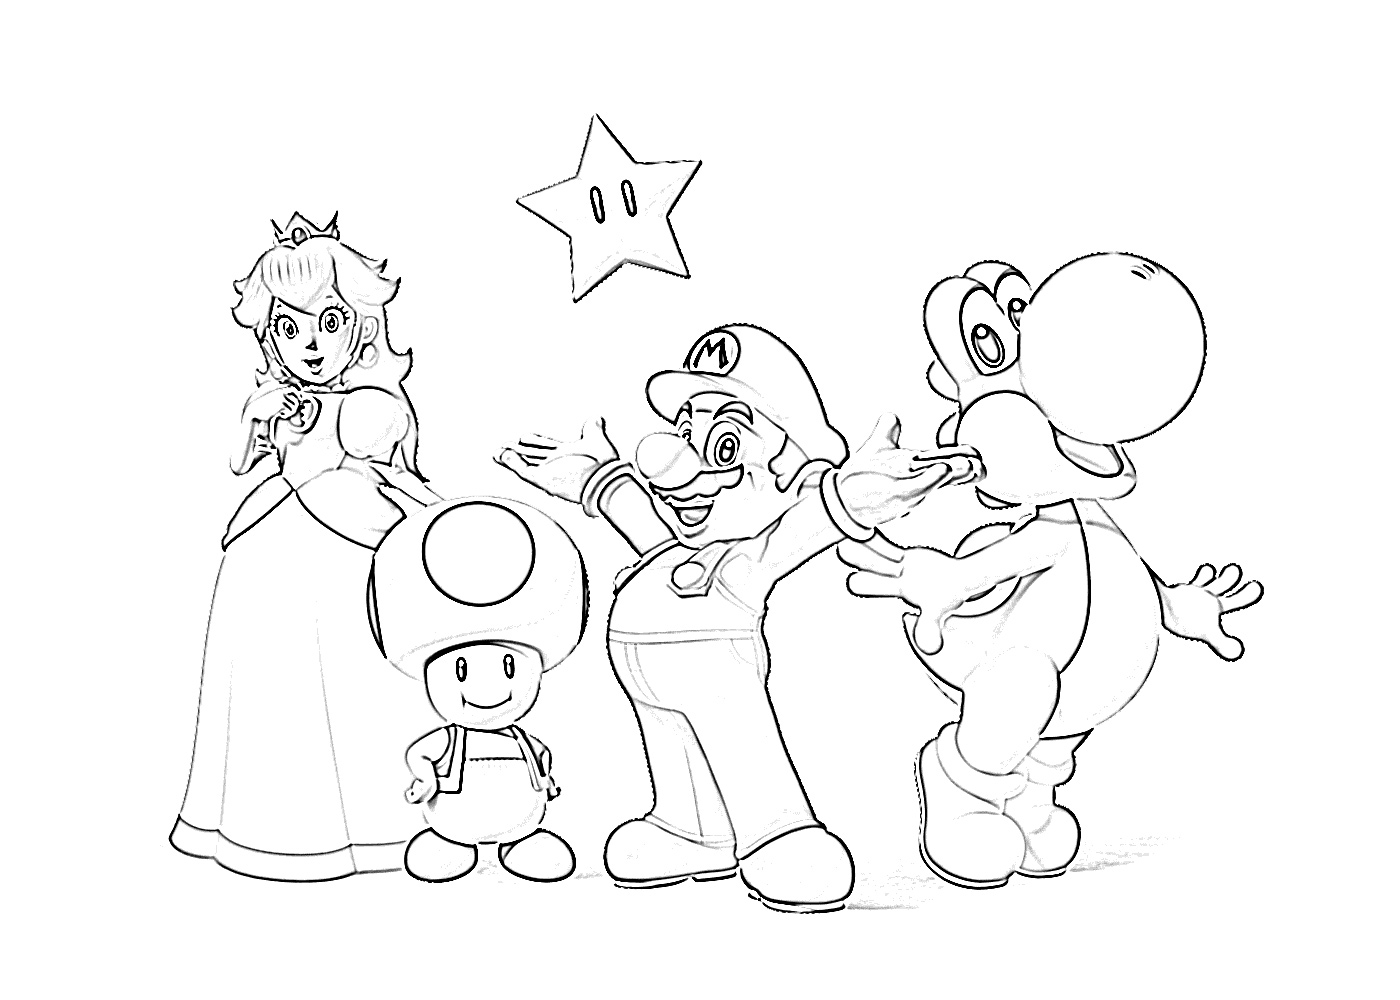 Super mario with peach, toad, yoshi coloring page